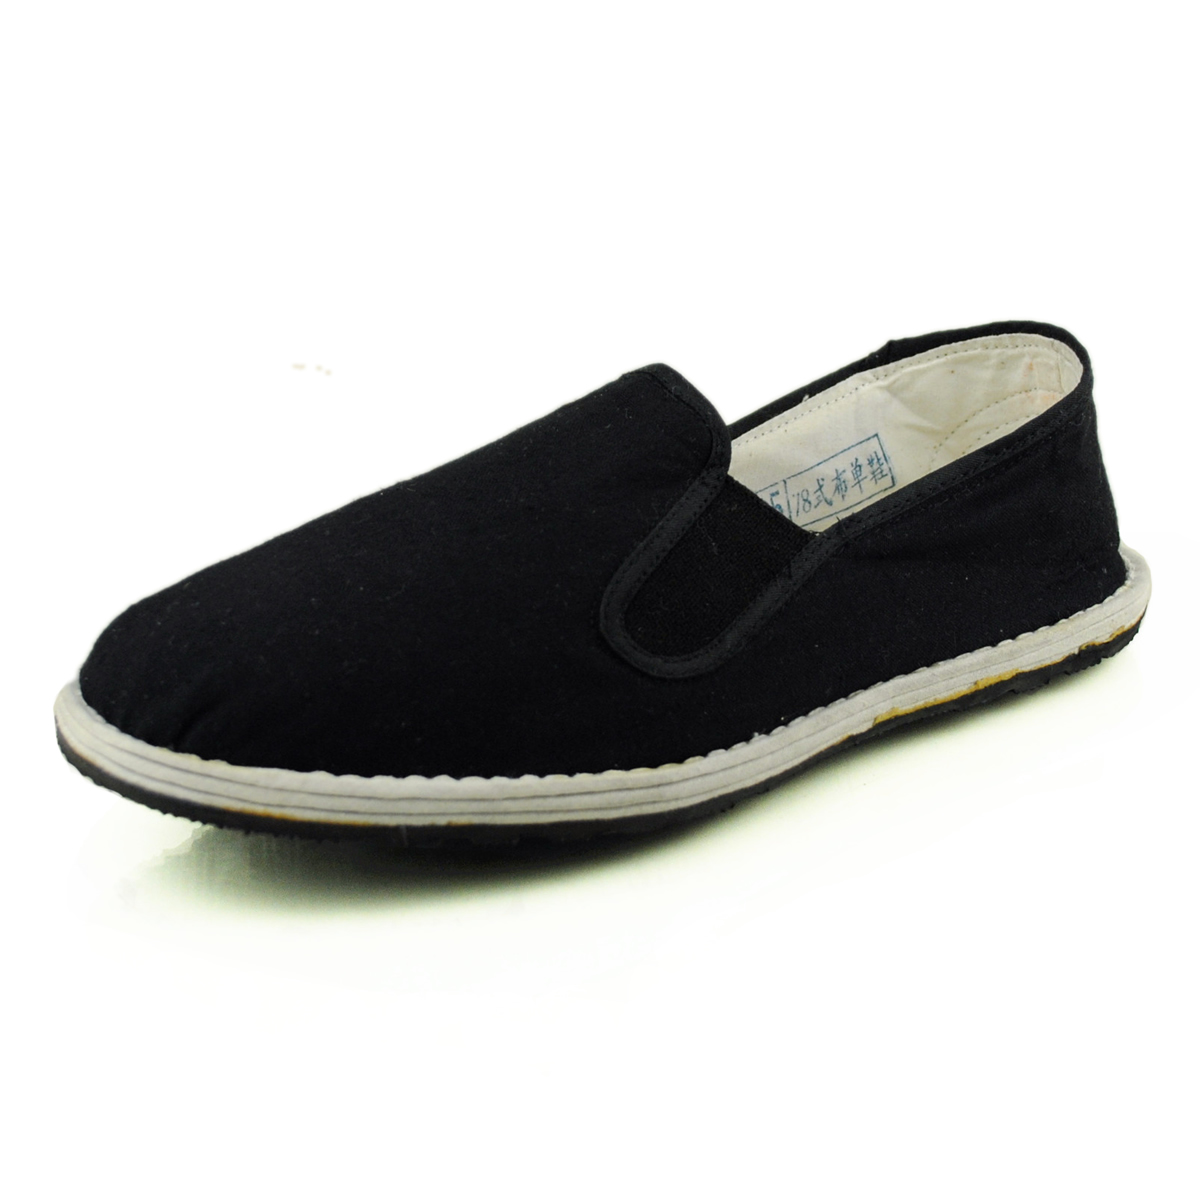 Zhengzhou 3519 general factory produces standard pure cotton cloth shoes, mens elastic, high wear-resistant and antiskid casual single shoes, womens shoes